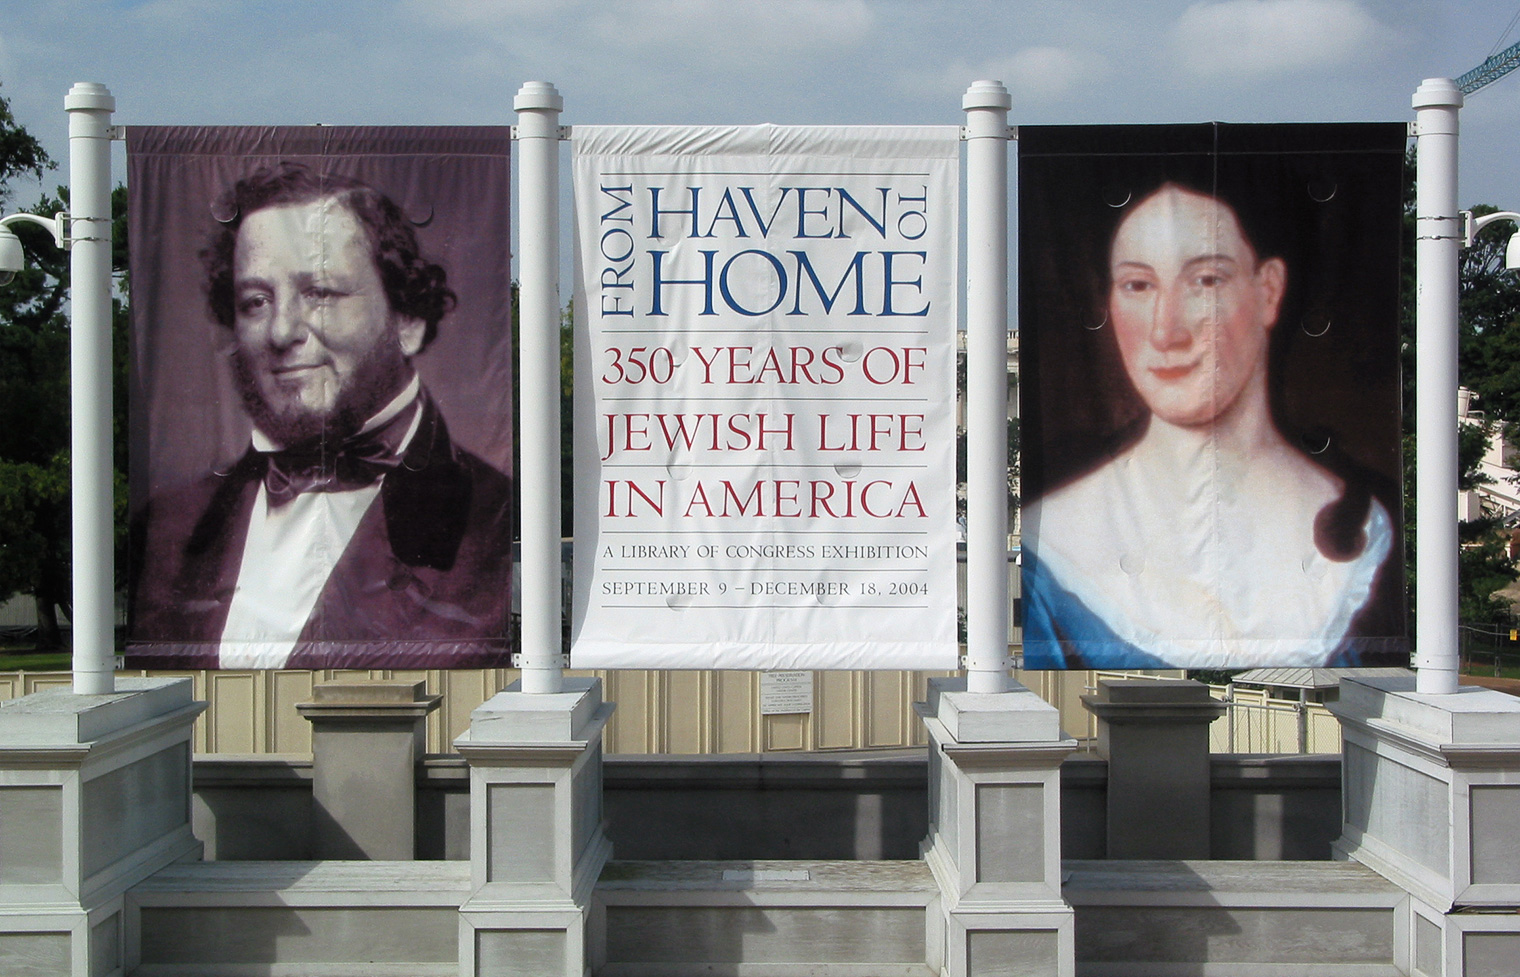 Exterior banners establish a theme of the many faces of Judaism in America.